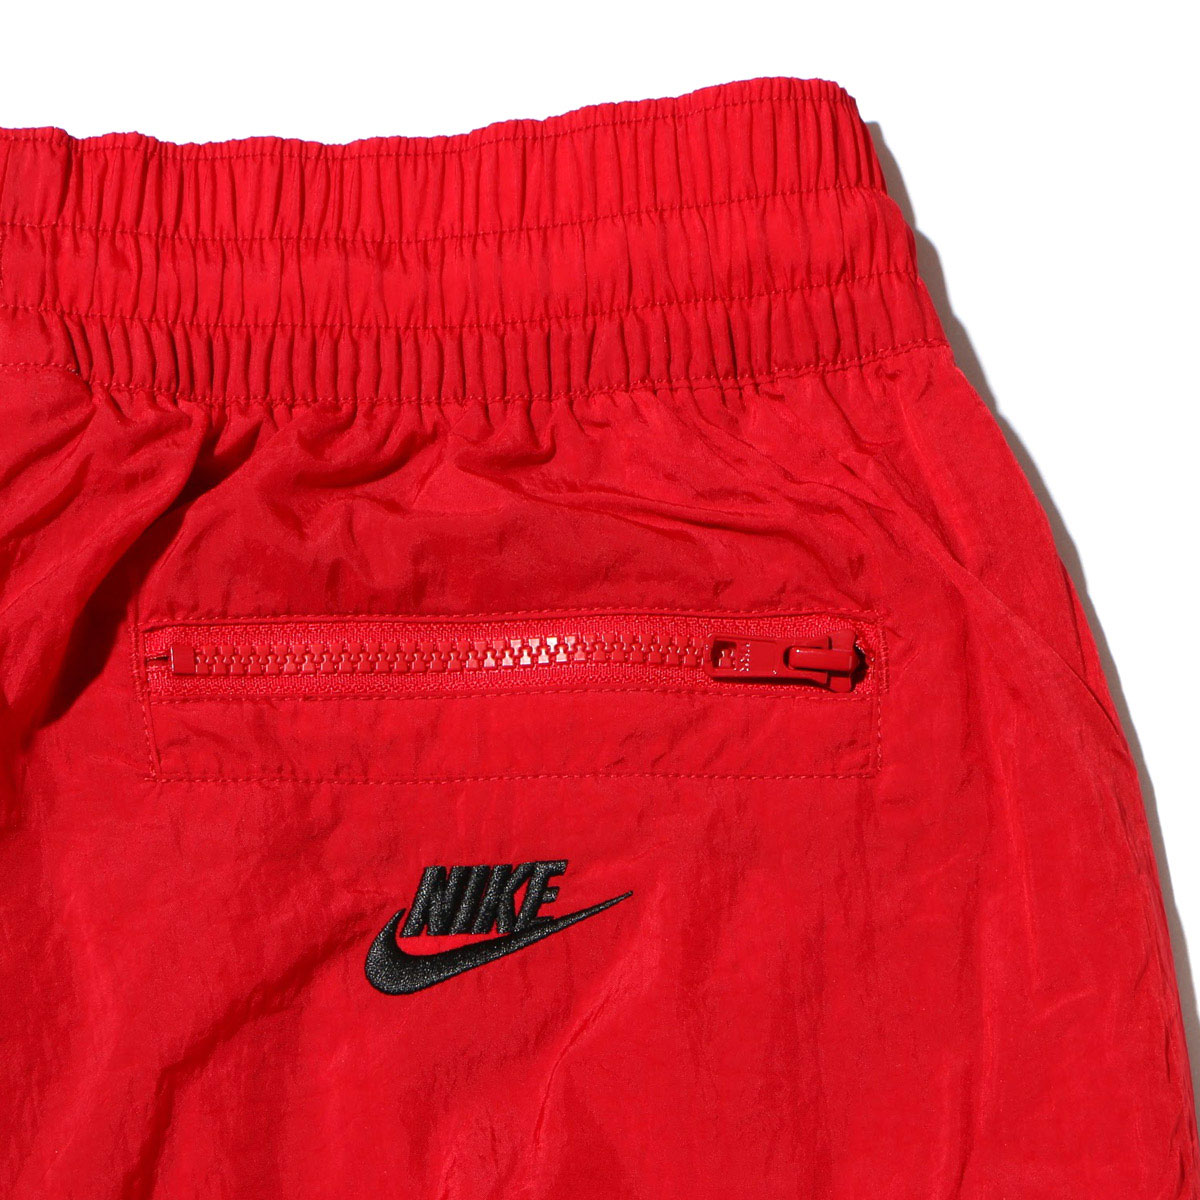 NIKE AS AJ5 VAULT PANT(687-GYM RED/BLACK/BLACK)(耐克乔丹AJ 5 Wort裤子)